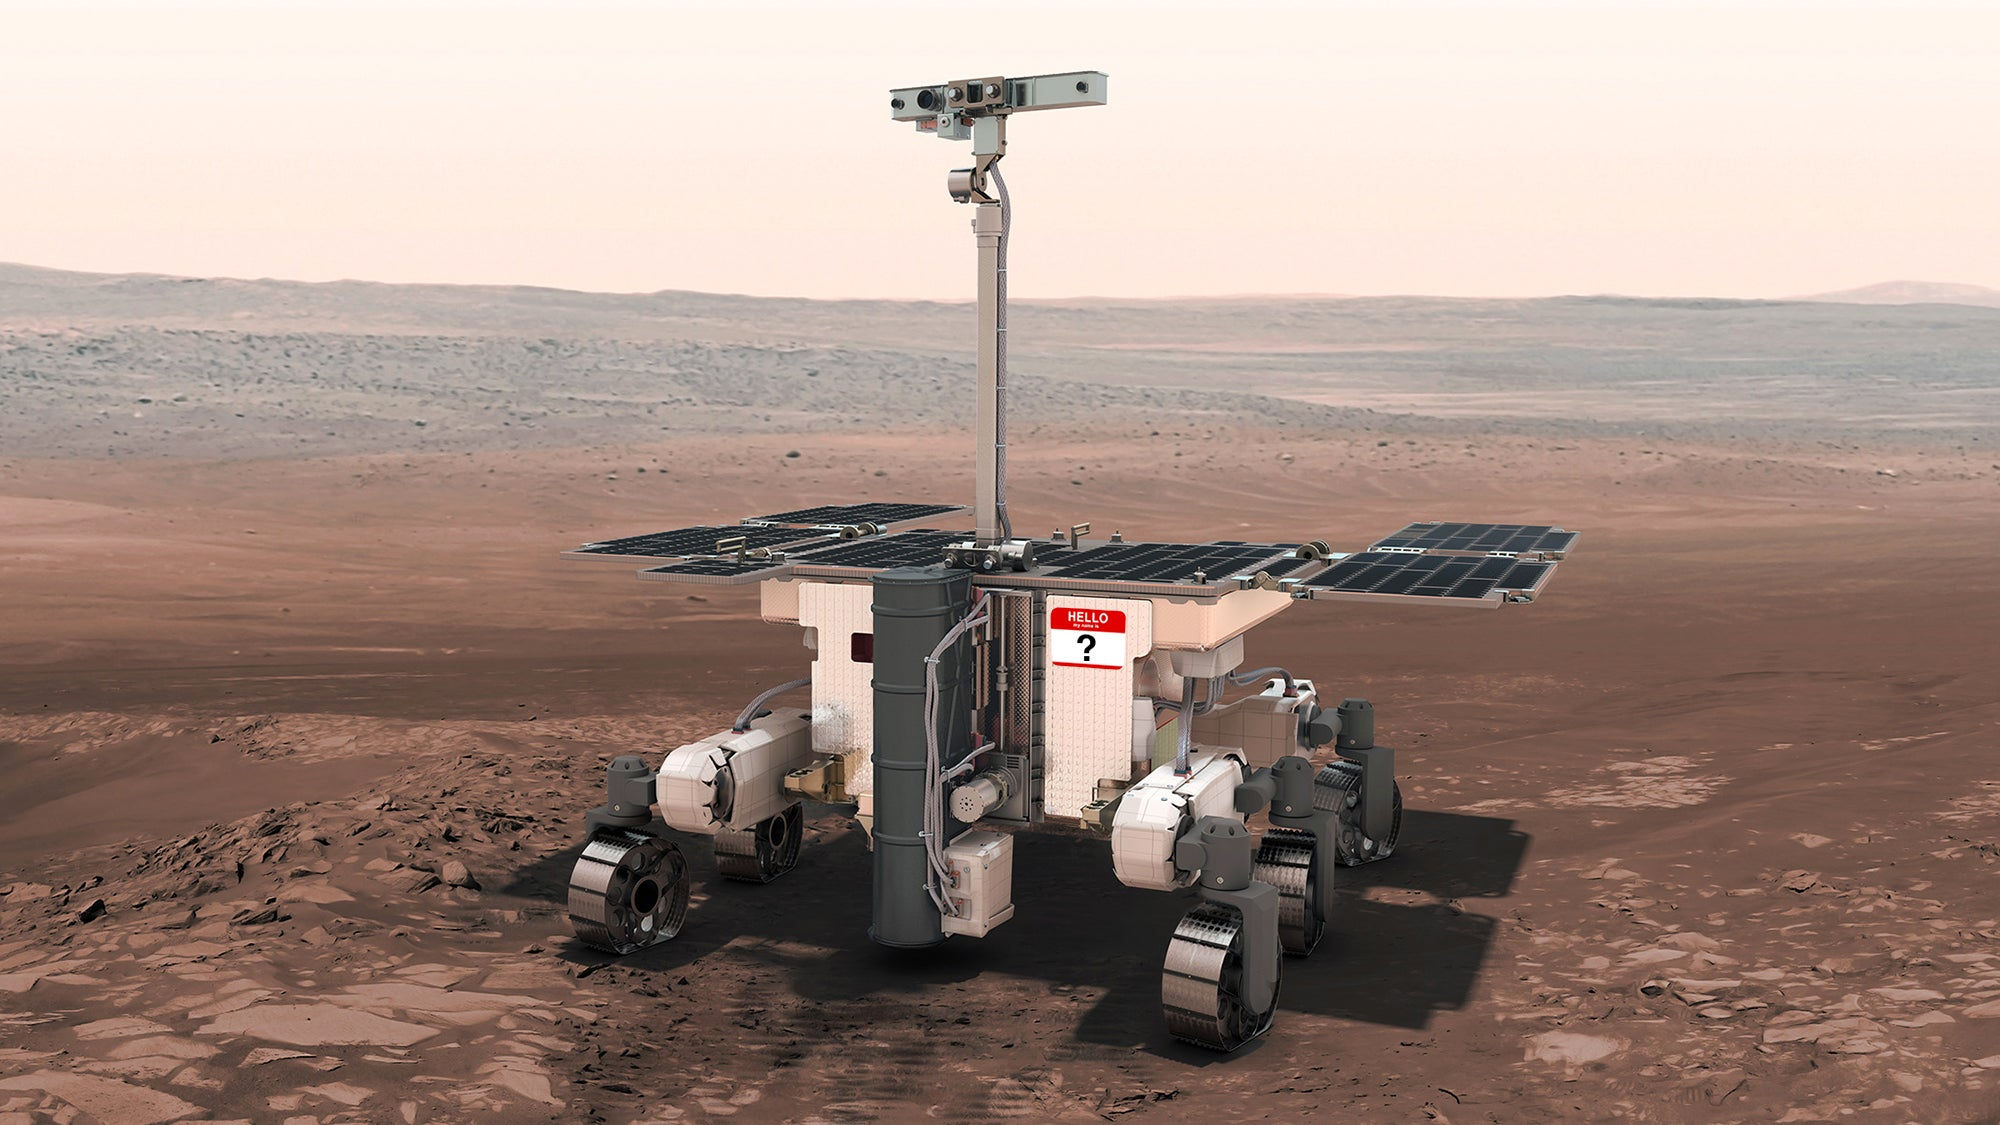 The UK Needs Help Naming Their Mars Rover, And Yes, They Already Thought Of That One